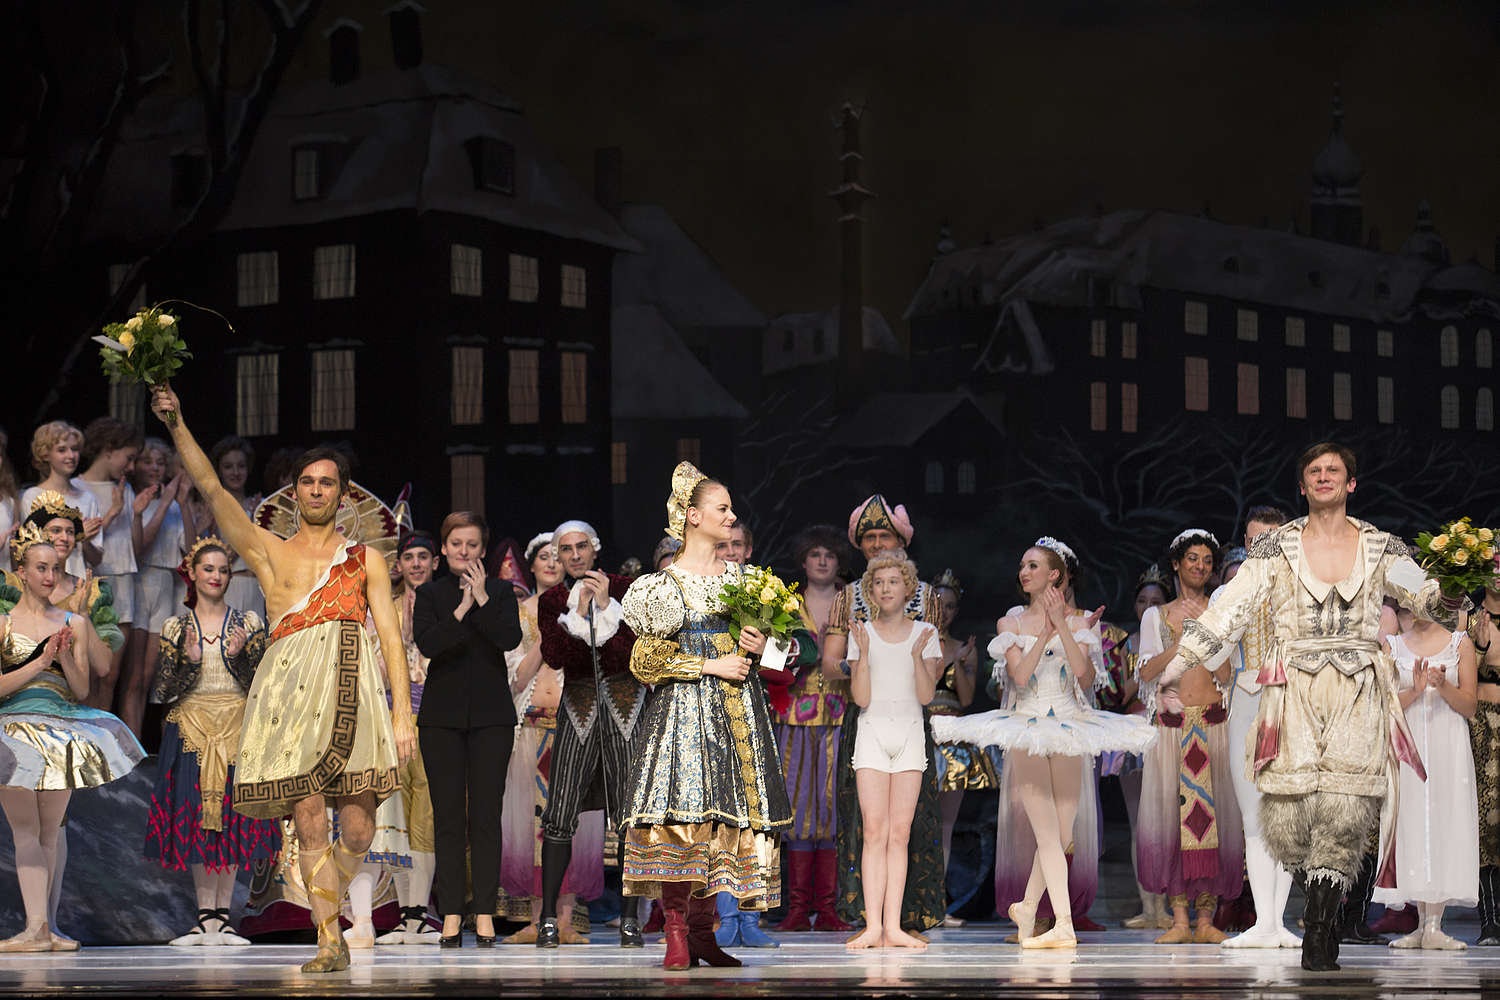 Pictured: Adam Kozal, Stella Walasik and Kurusz Wojeński during curtain call after a performance of The Nutcracker